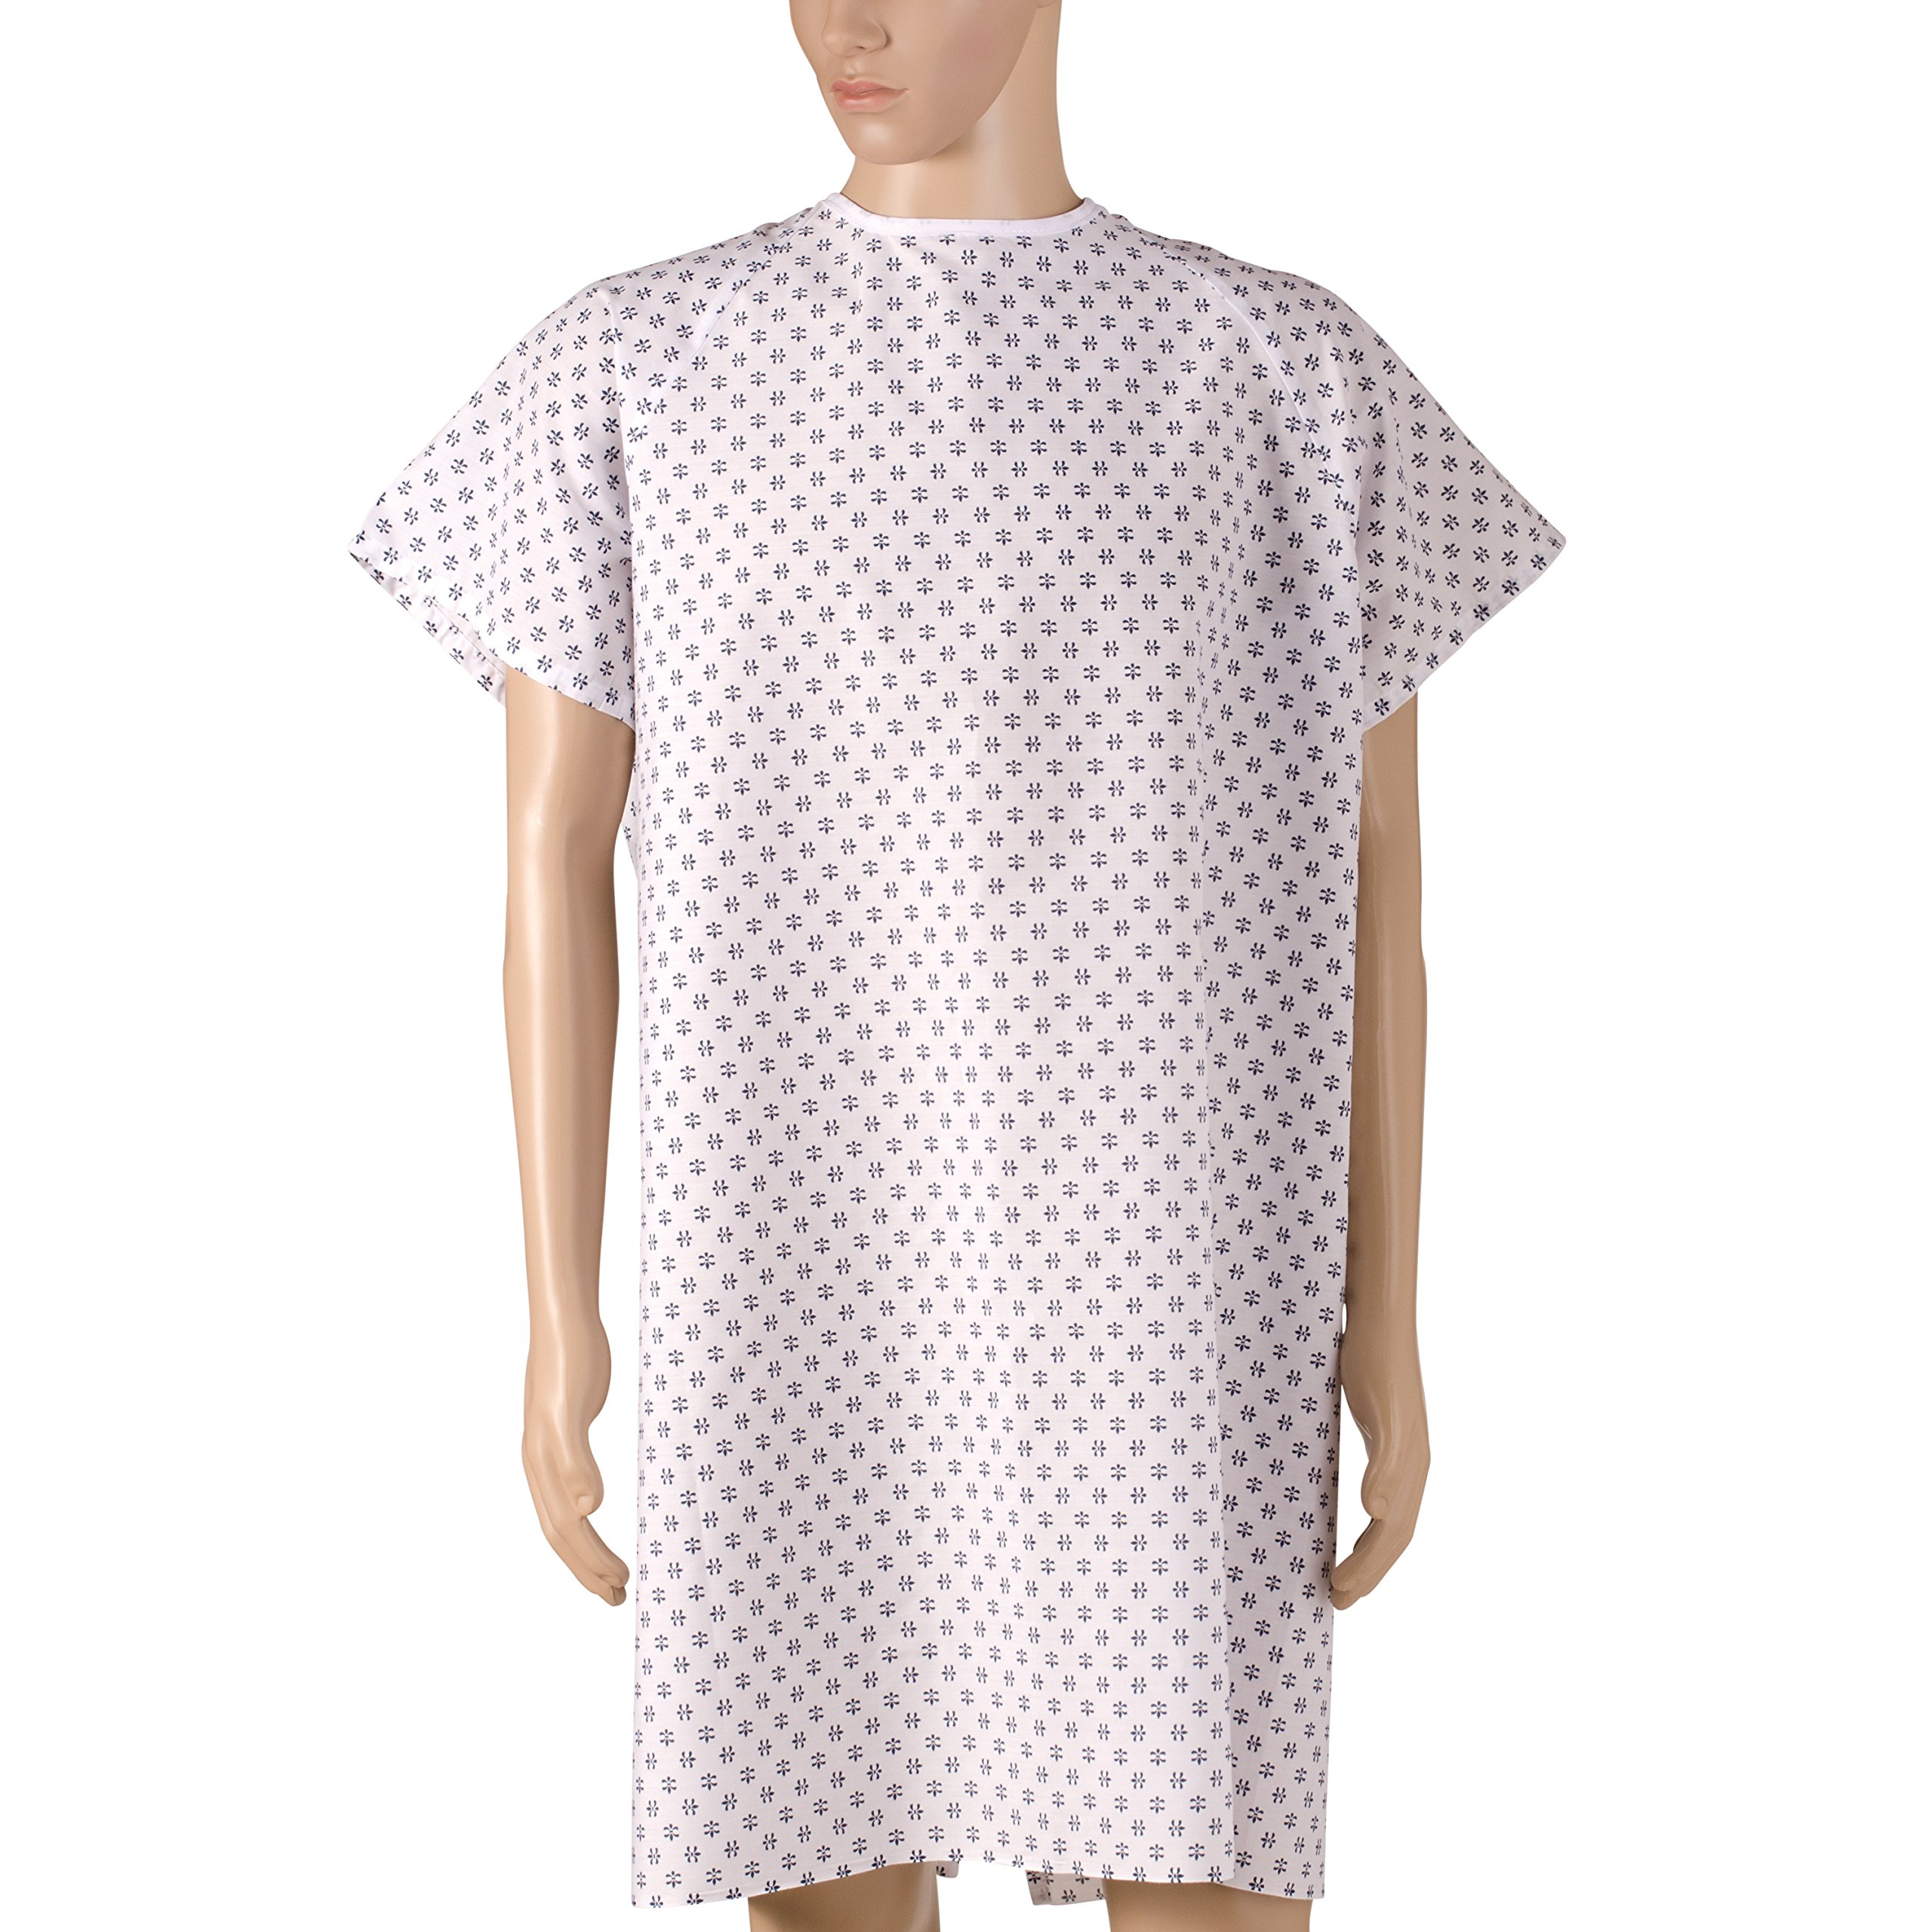 DMI Patient Unisex Hospital Gowns with Back Tie, Print, 12-Count